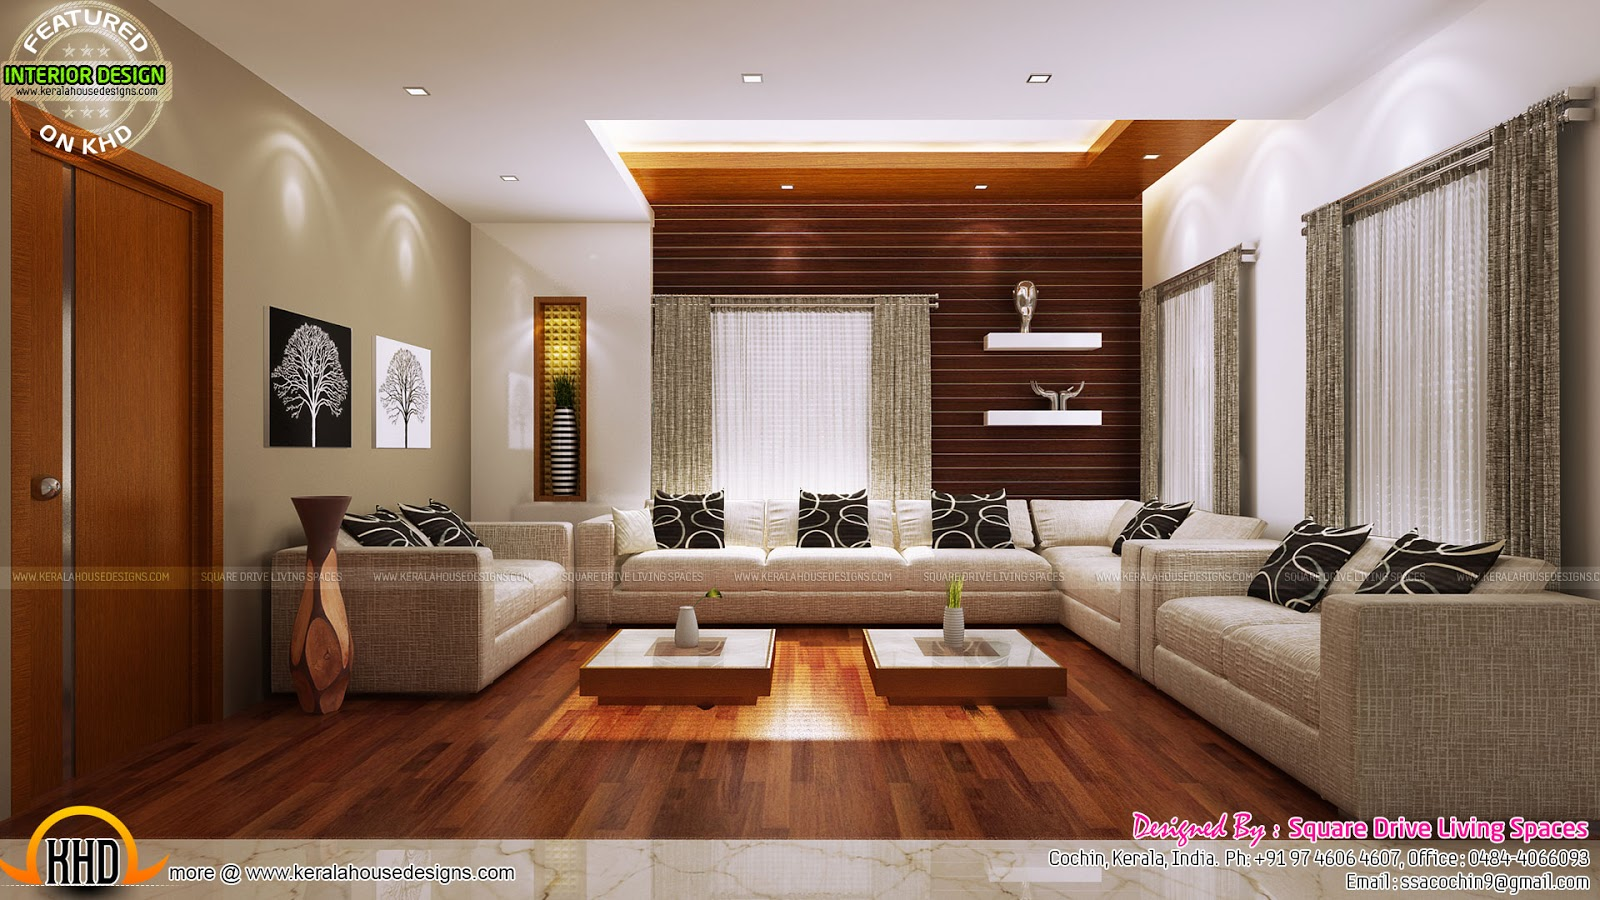 Excellent kerala interior design kerala home design and for Photo gallery of interior designs